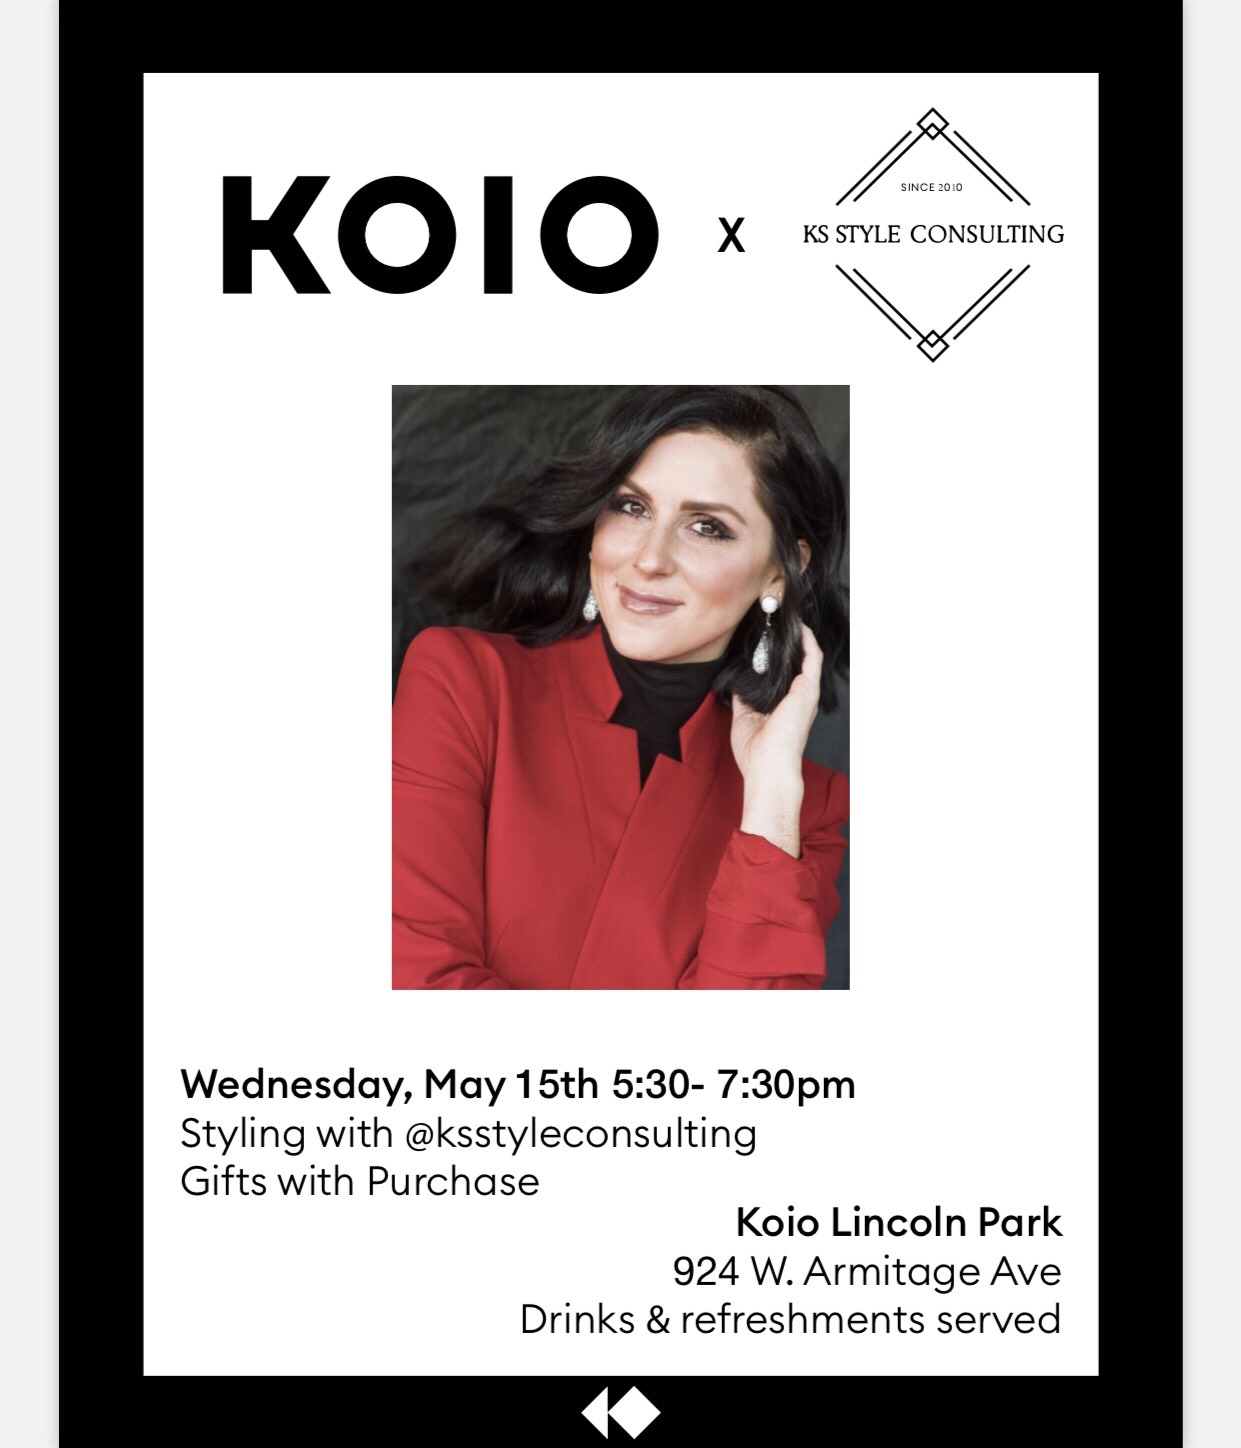 Join me May 15th for an evening of styling, drinks, and gifts with purchase at  Koio Lincoln Park!        Stay Stylish Chicago,     Katie